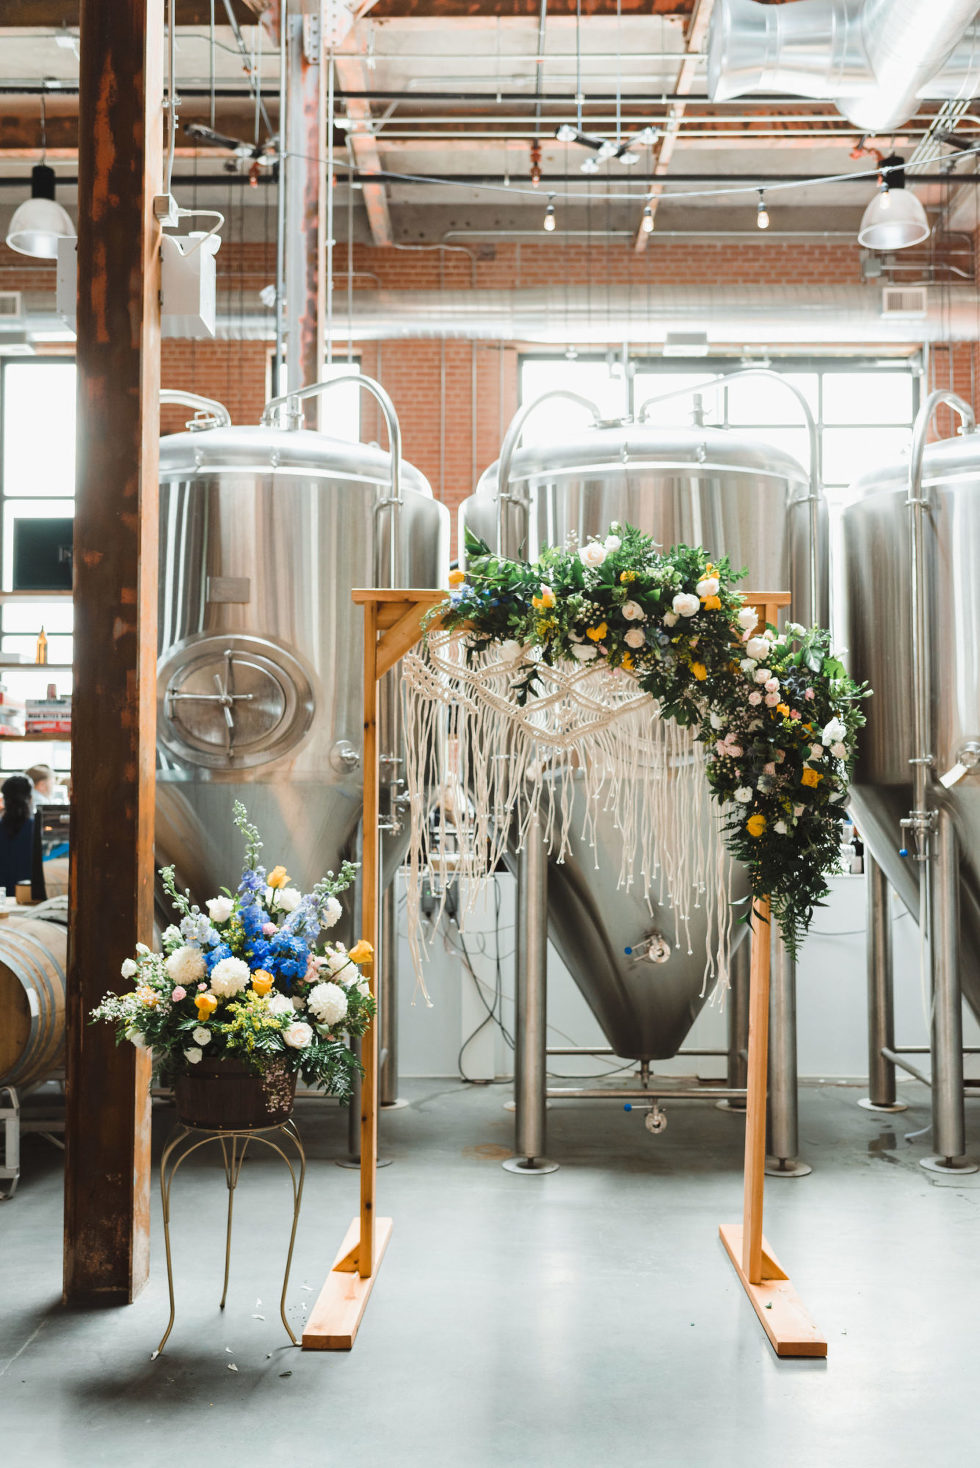 wedding alter set up in front of brewing tanks Toronto Junction Craft Brewing wedding